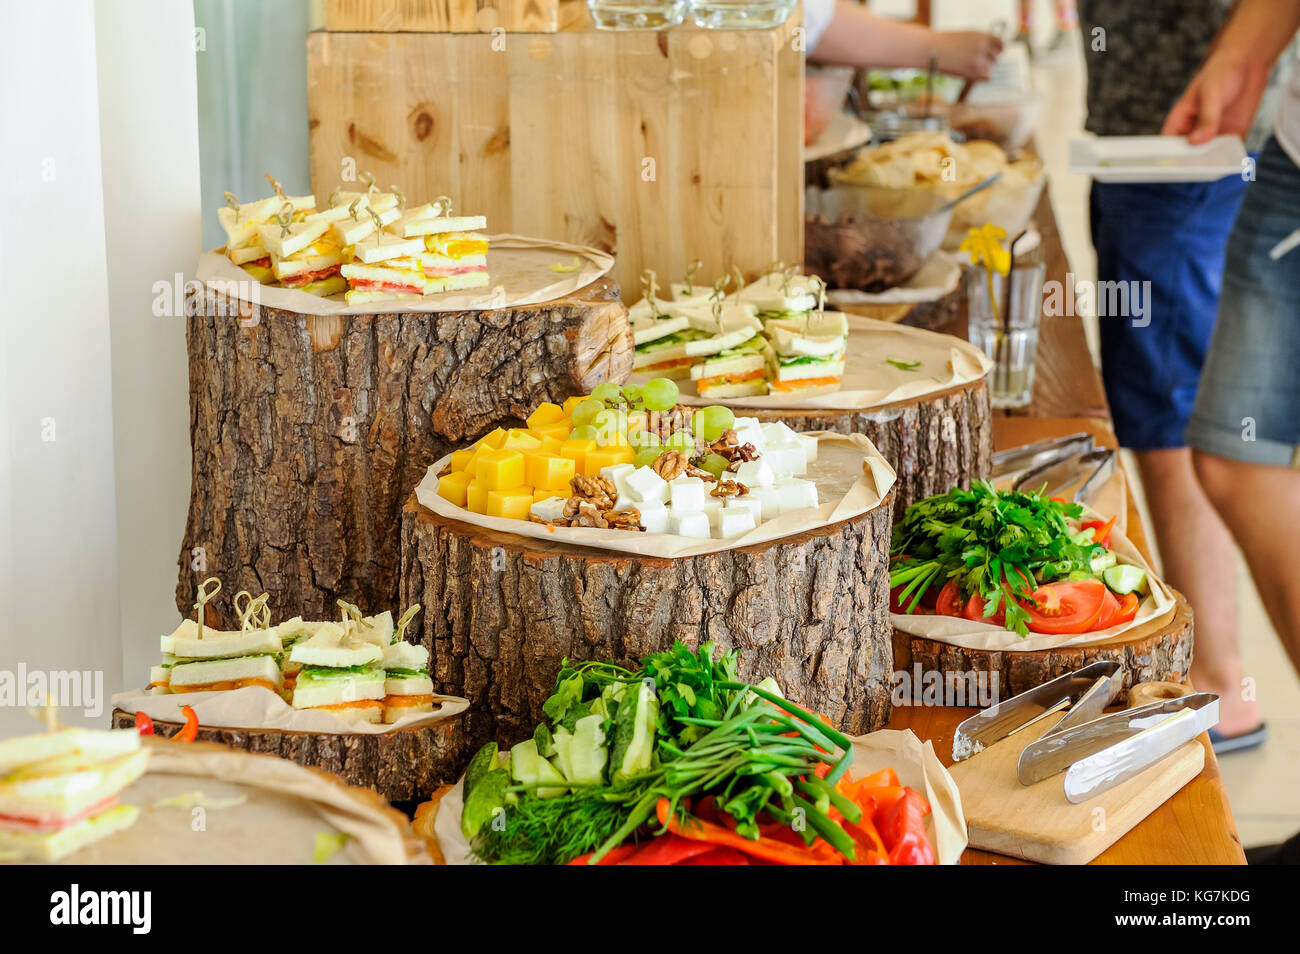 Outstanding Outside Catering Buffet Table With A Delicious Food For Download Free Architecture Designs Scobabritishbridgeorg